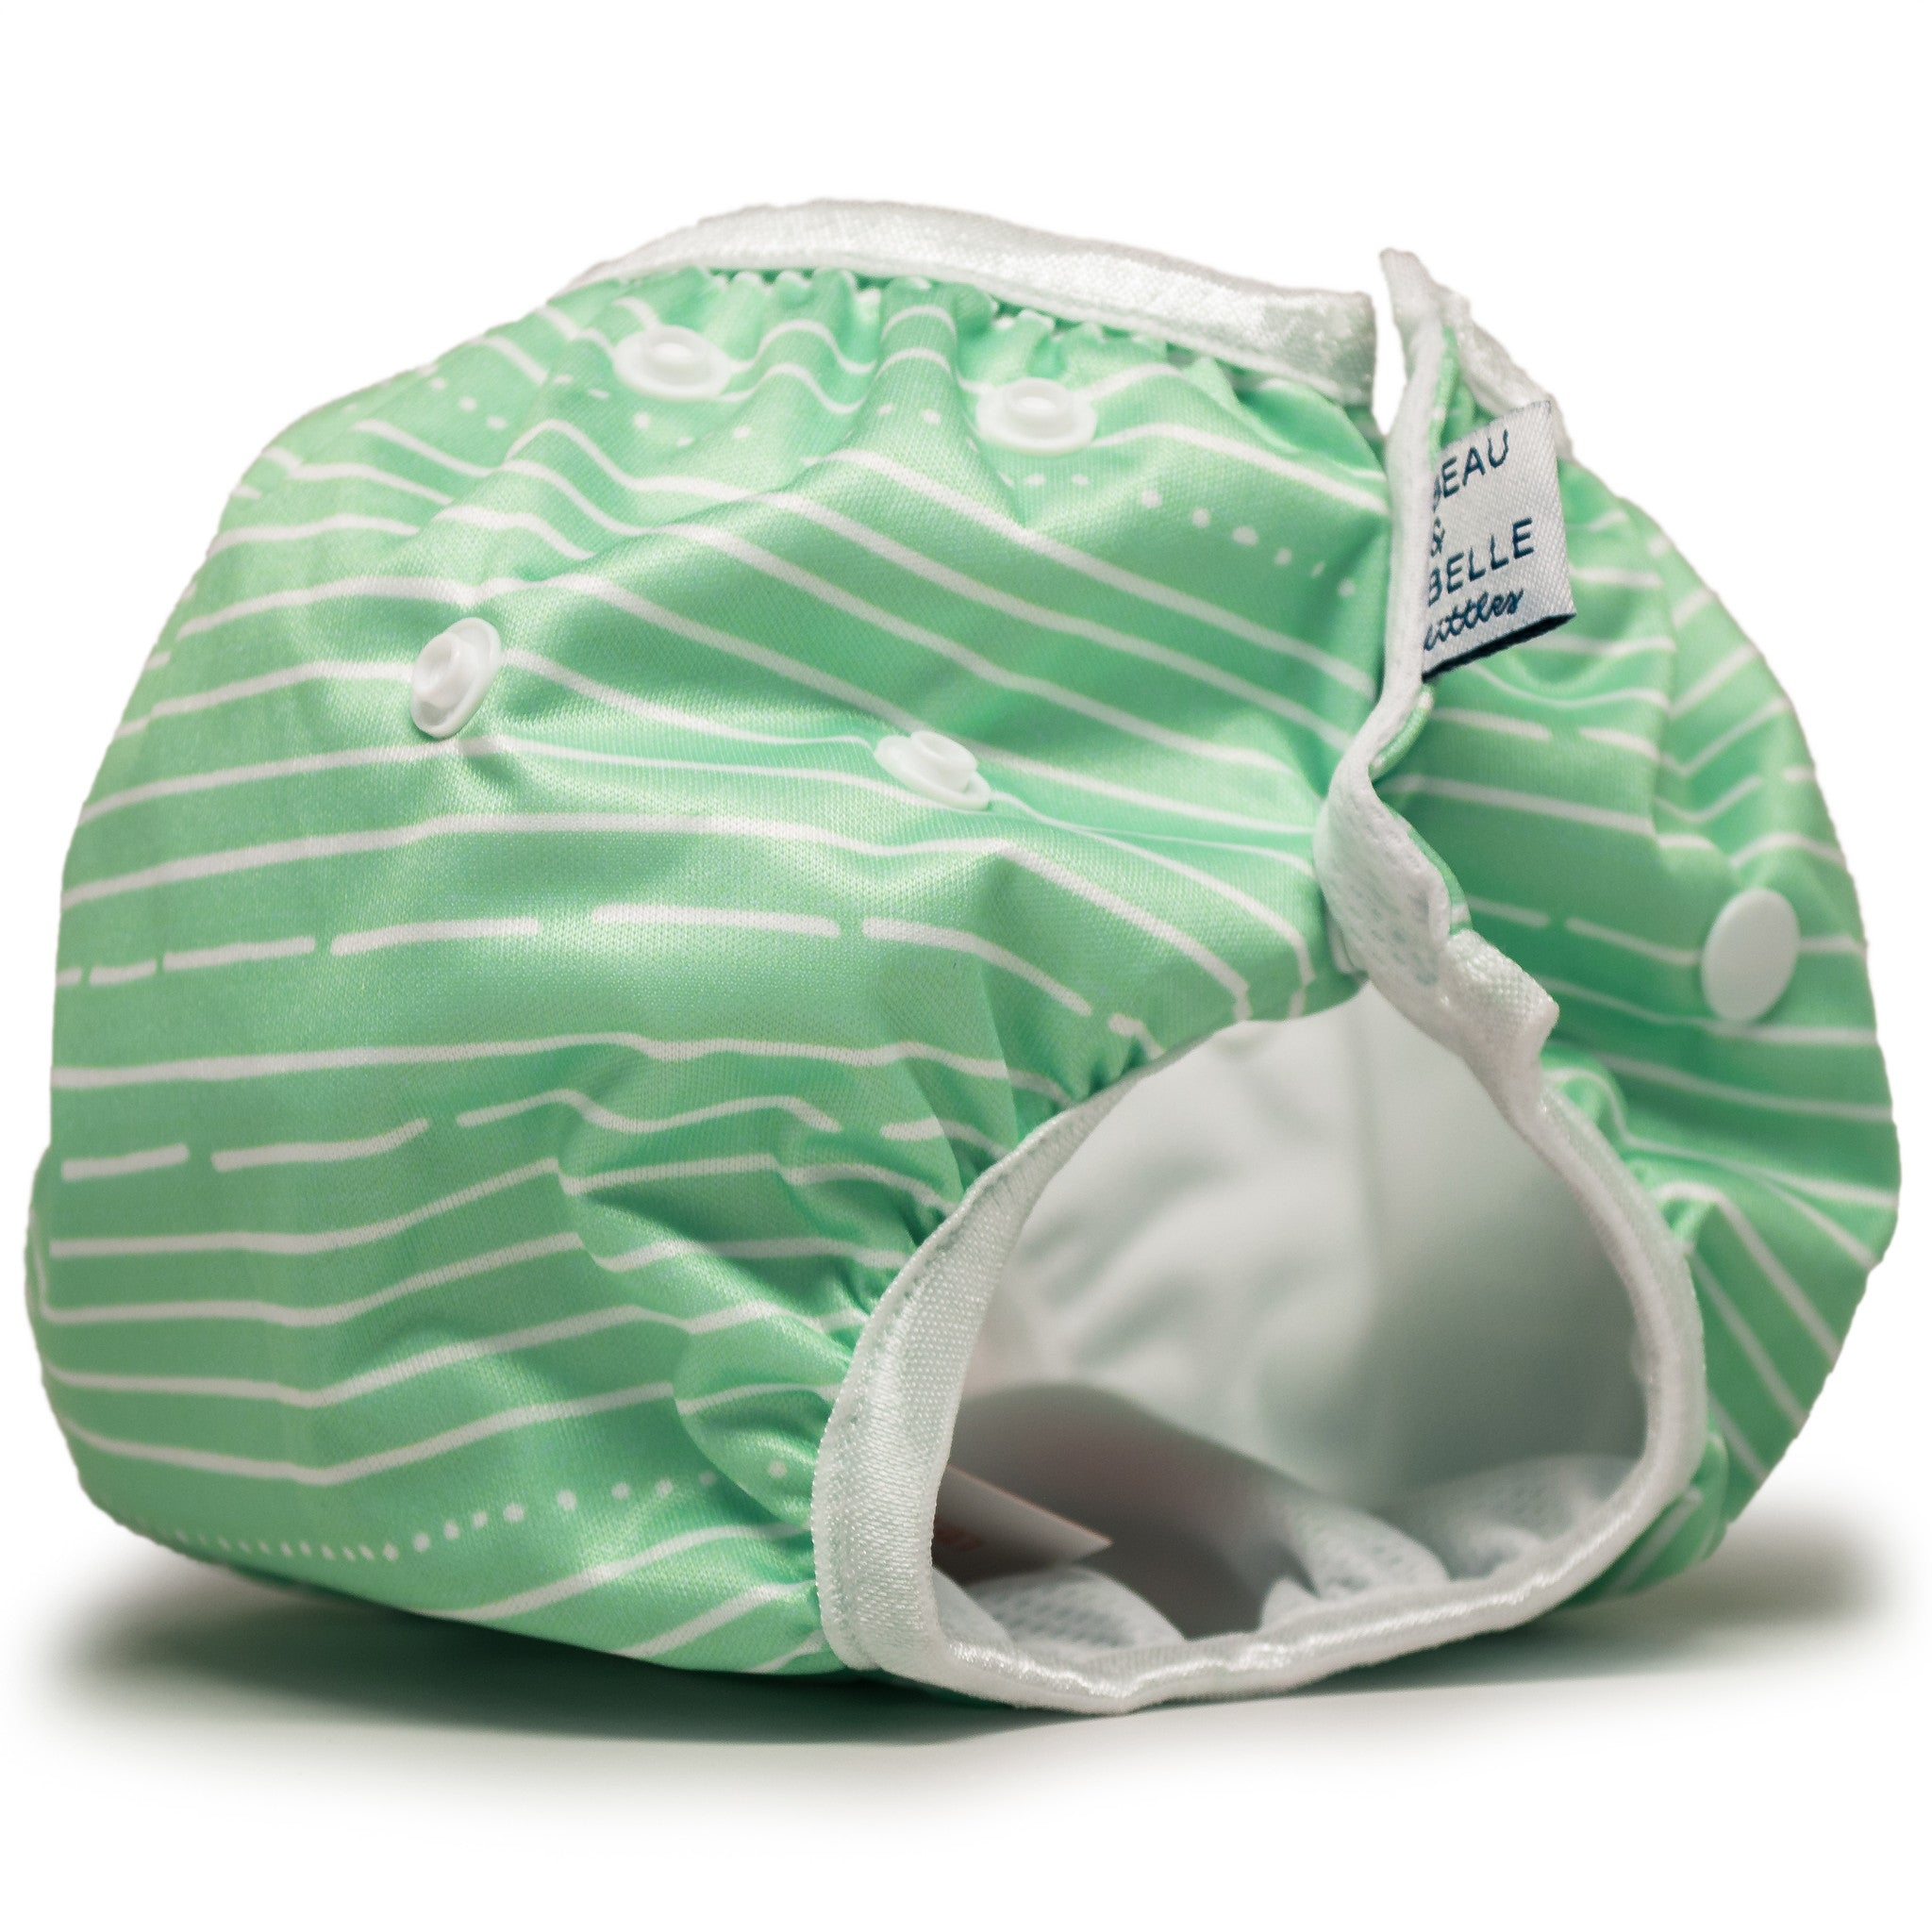 Beau and Belle Littles Swim Diaper, Regular Size, light green with white horizontal pin stripes, side view